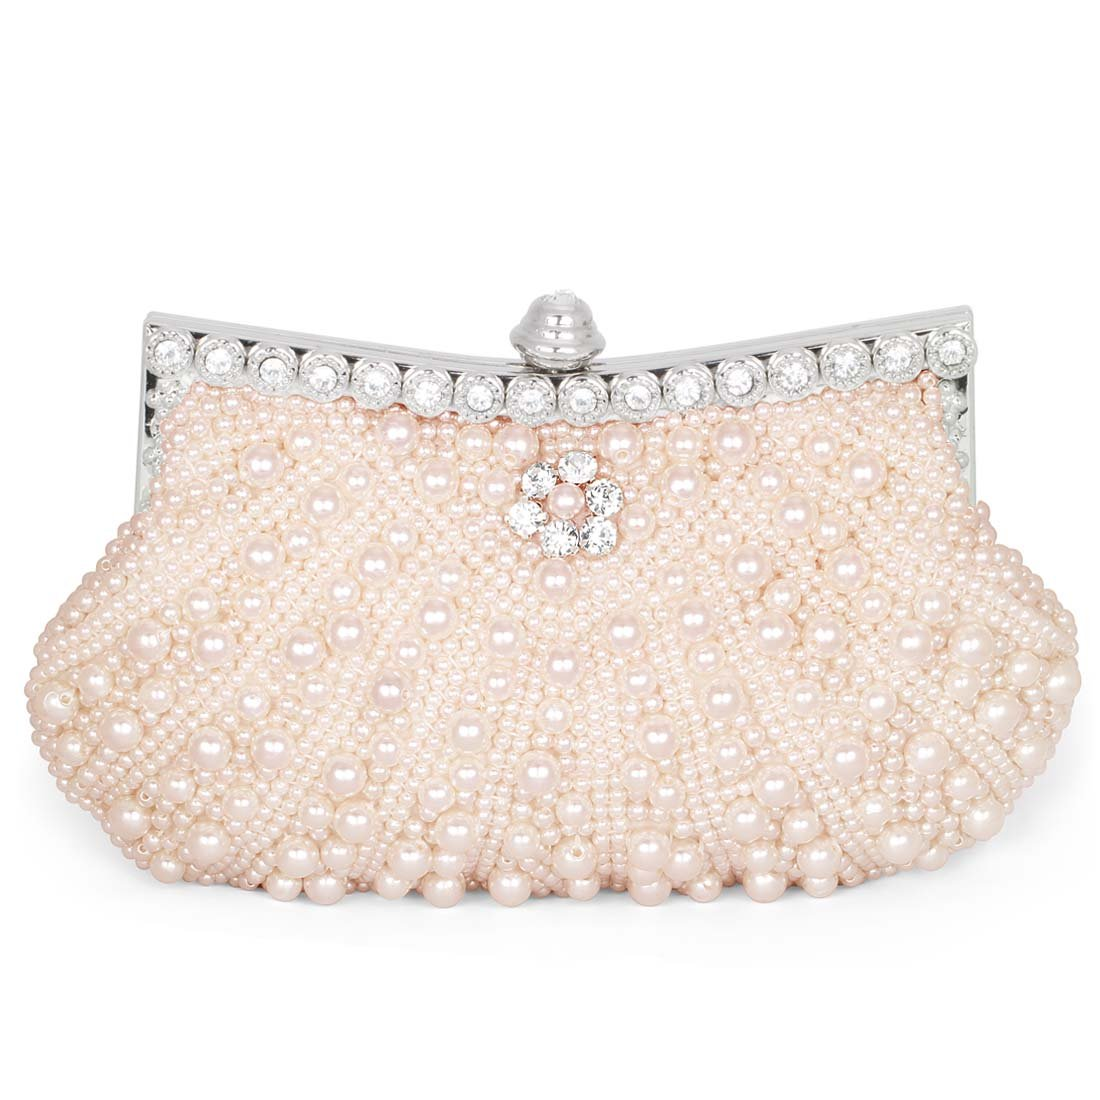 BMC Womens Pink Champagne Faux Pearl Cascading Bead Rhinestone Encrusted Evening Clutch Cocktail Party Fashion Purse